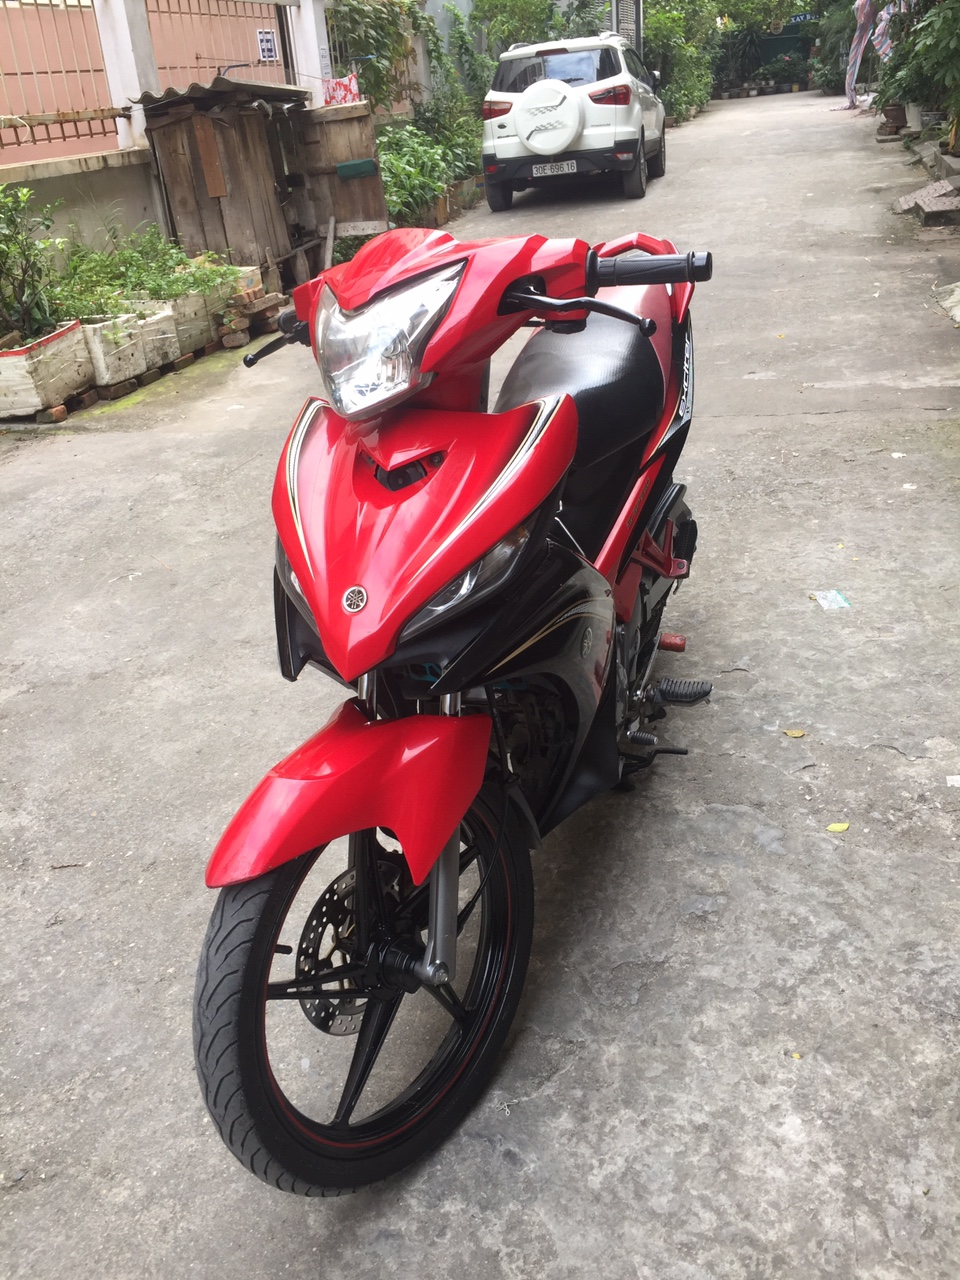 Exciter 135RC con tay 2012 do chinh chu may chat luong 22tr800